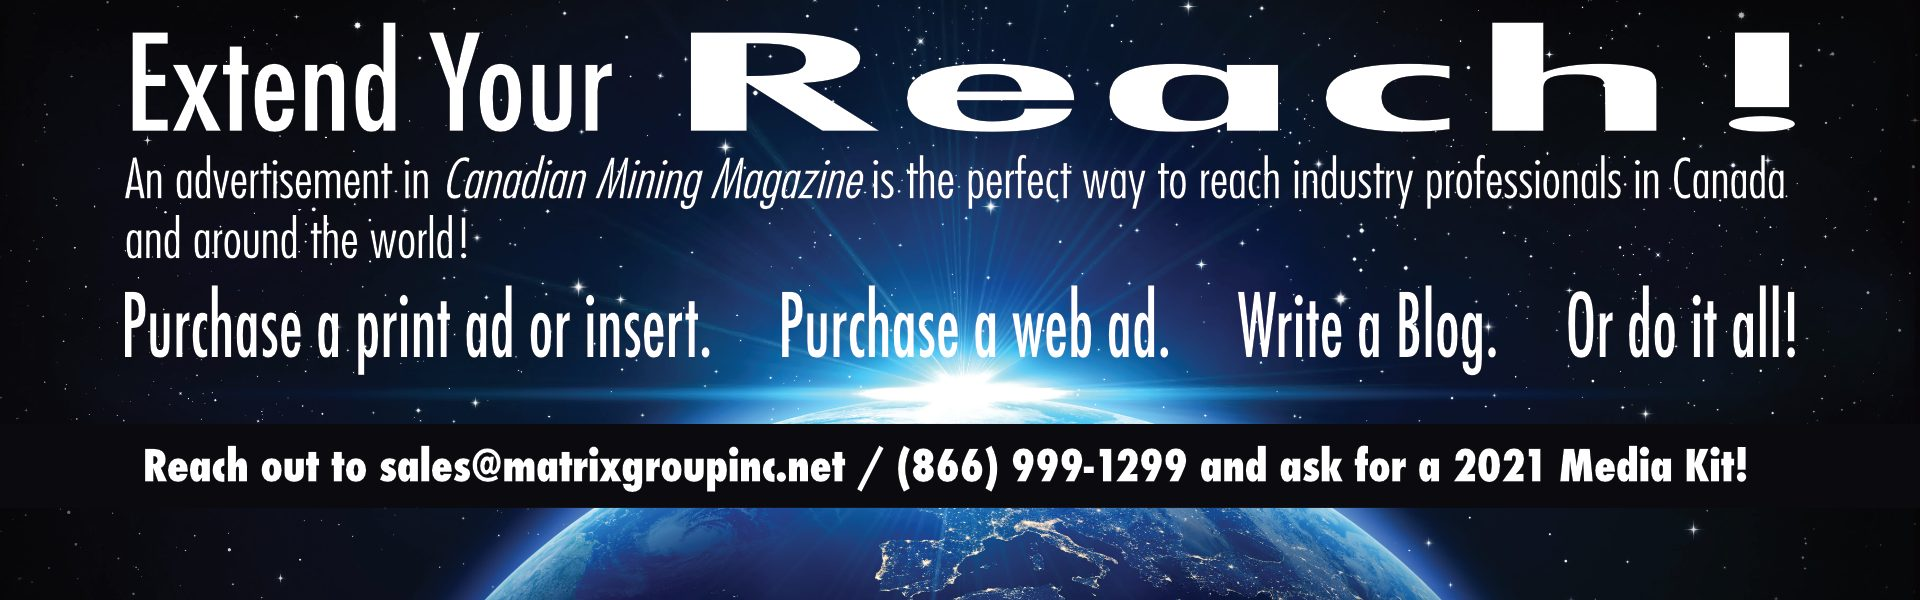 Extend your reach with Canadian Mining Magazine